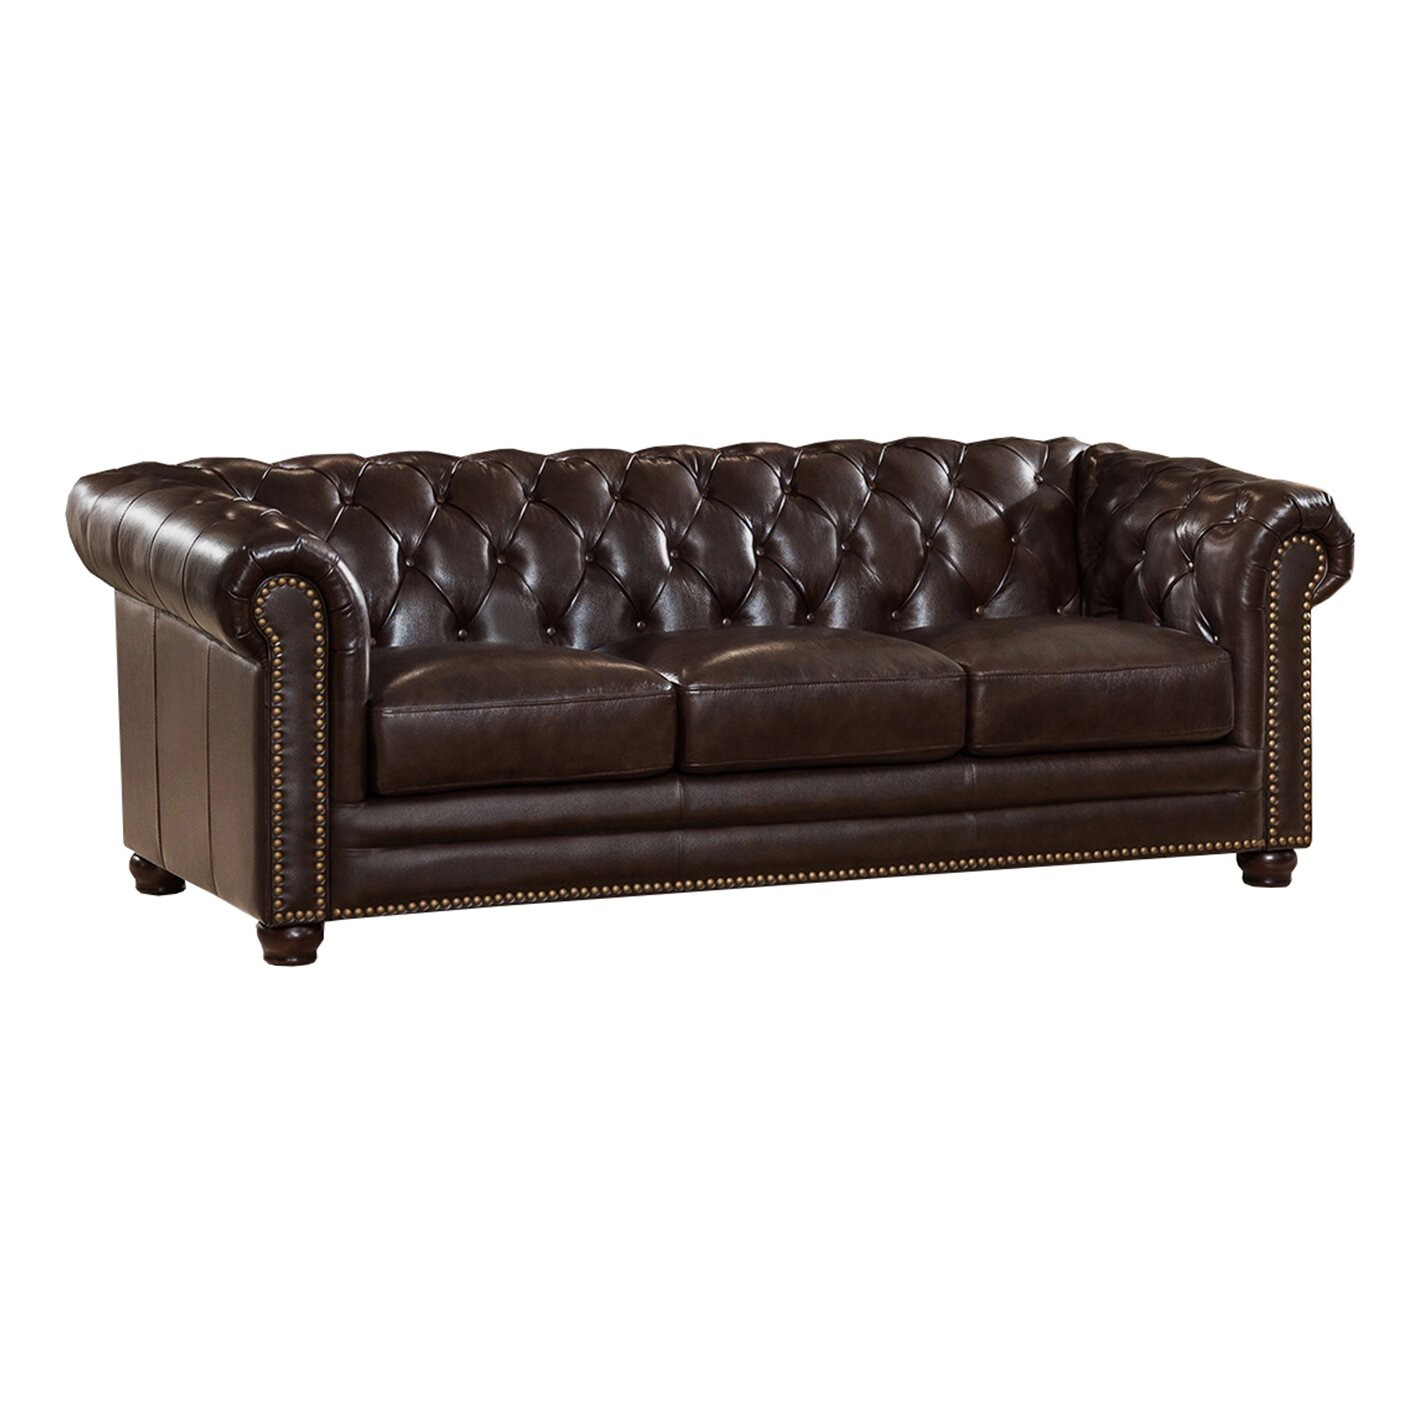 Chesterfield Sofa Leder Chesterfield Leather Sofa Pottery Barn 94 Classic Chesterfield Sofa